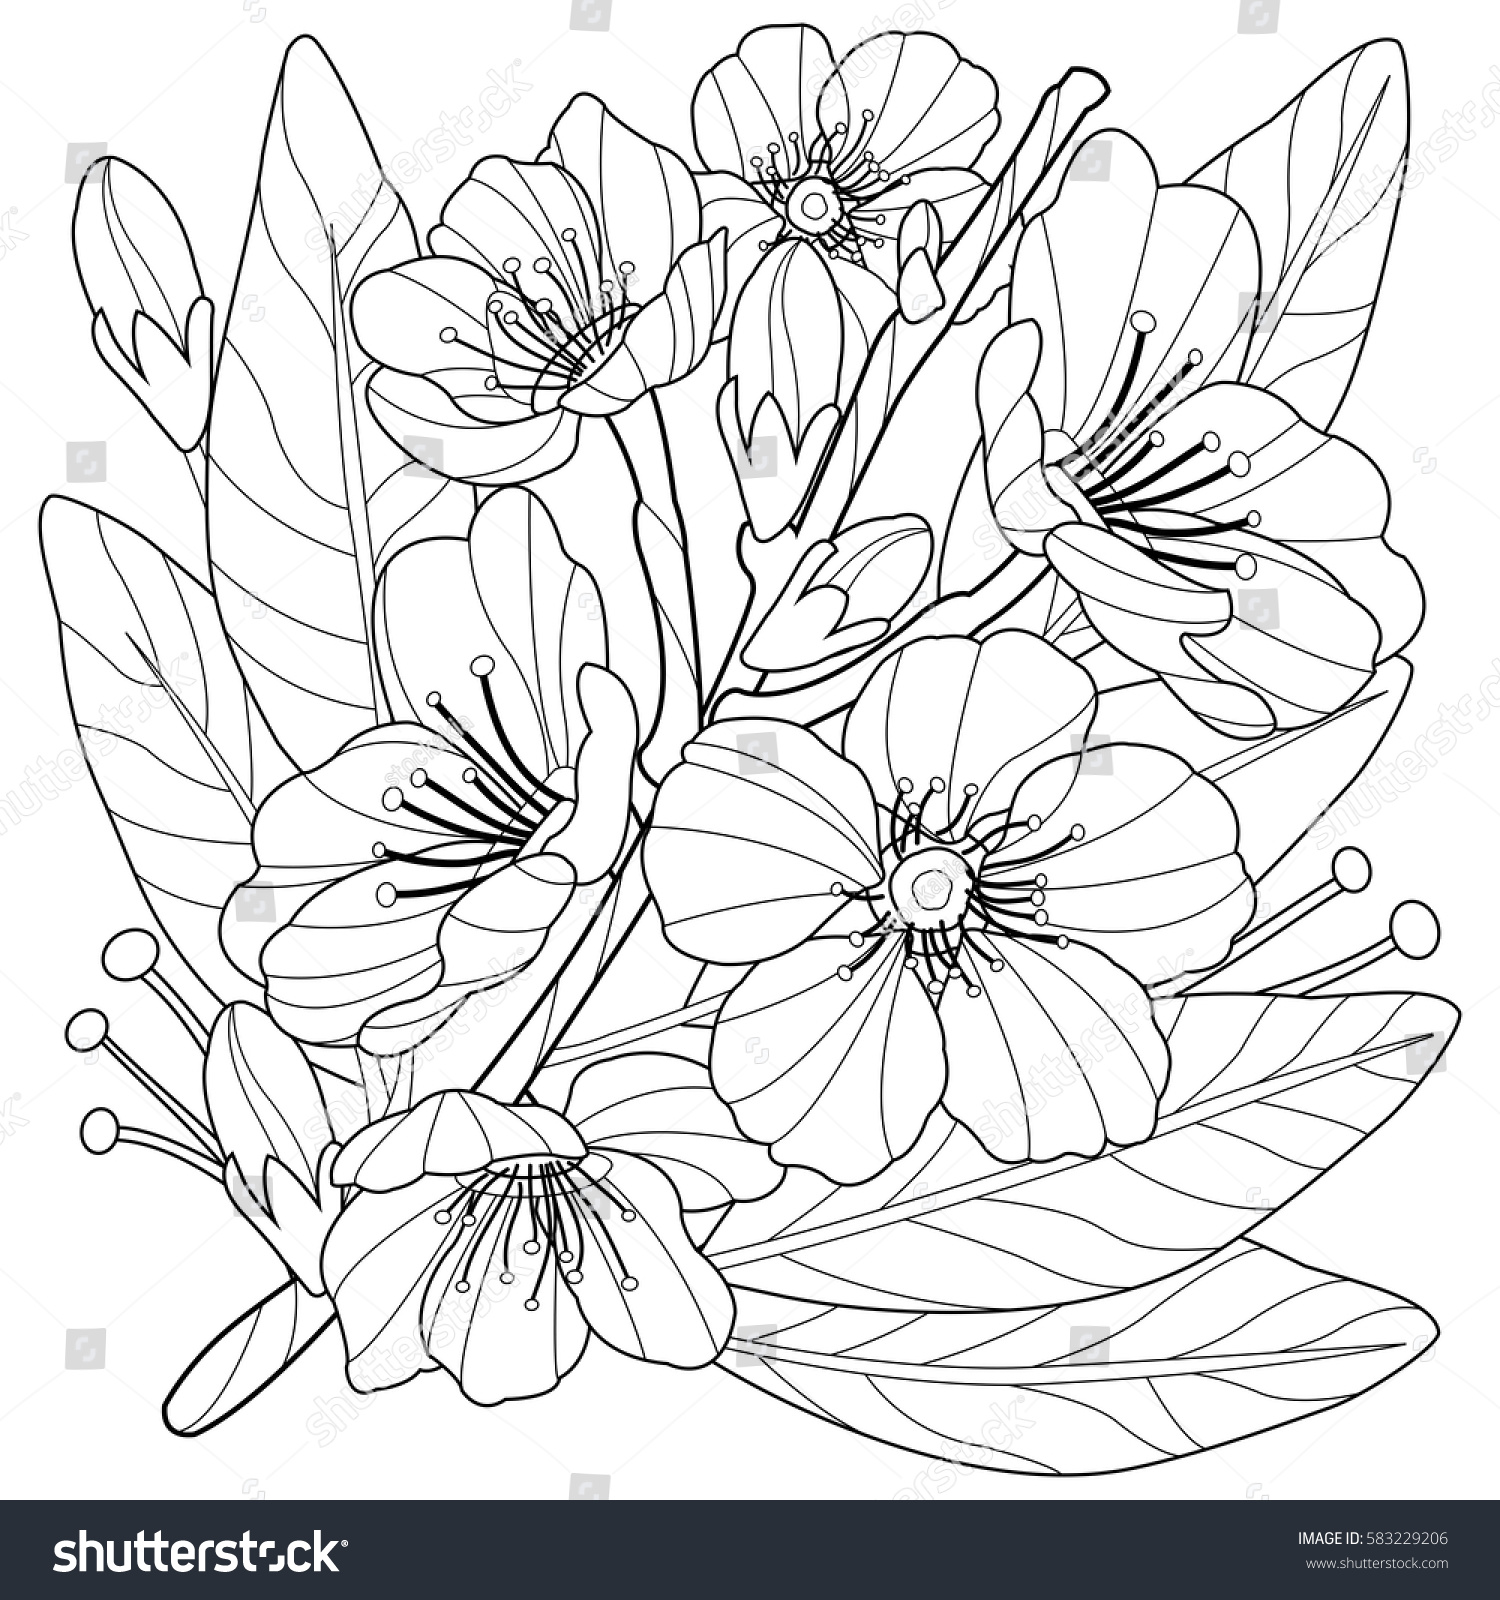 Coloring pages trees and flowers - Blossoming Almond Tree Branch With Flowers Coloring Book Page